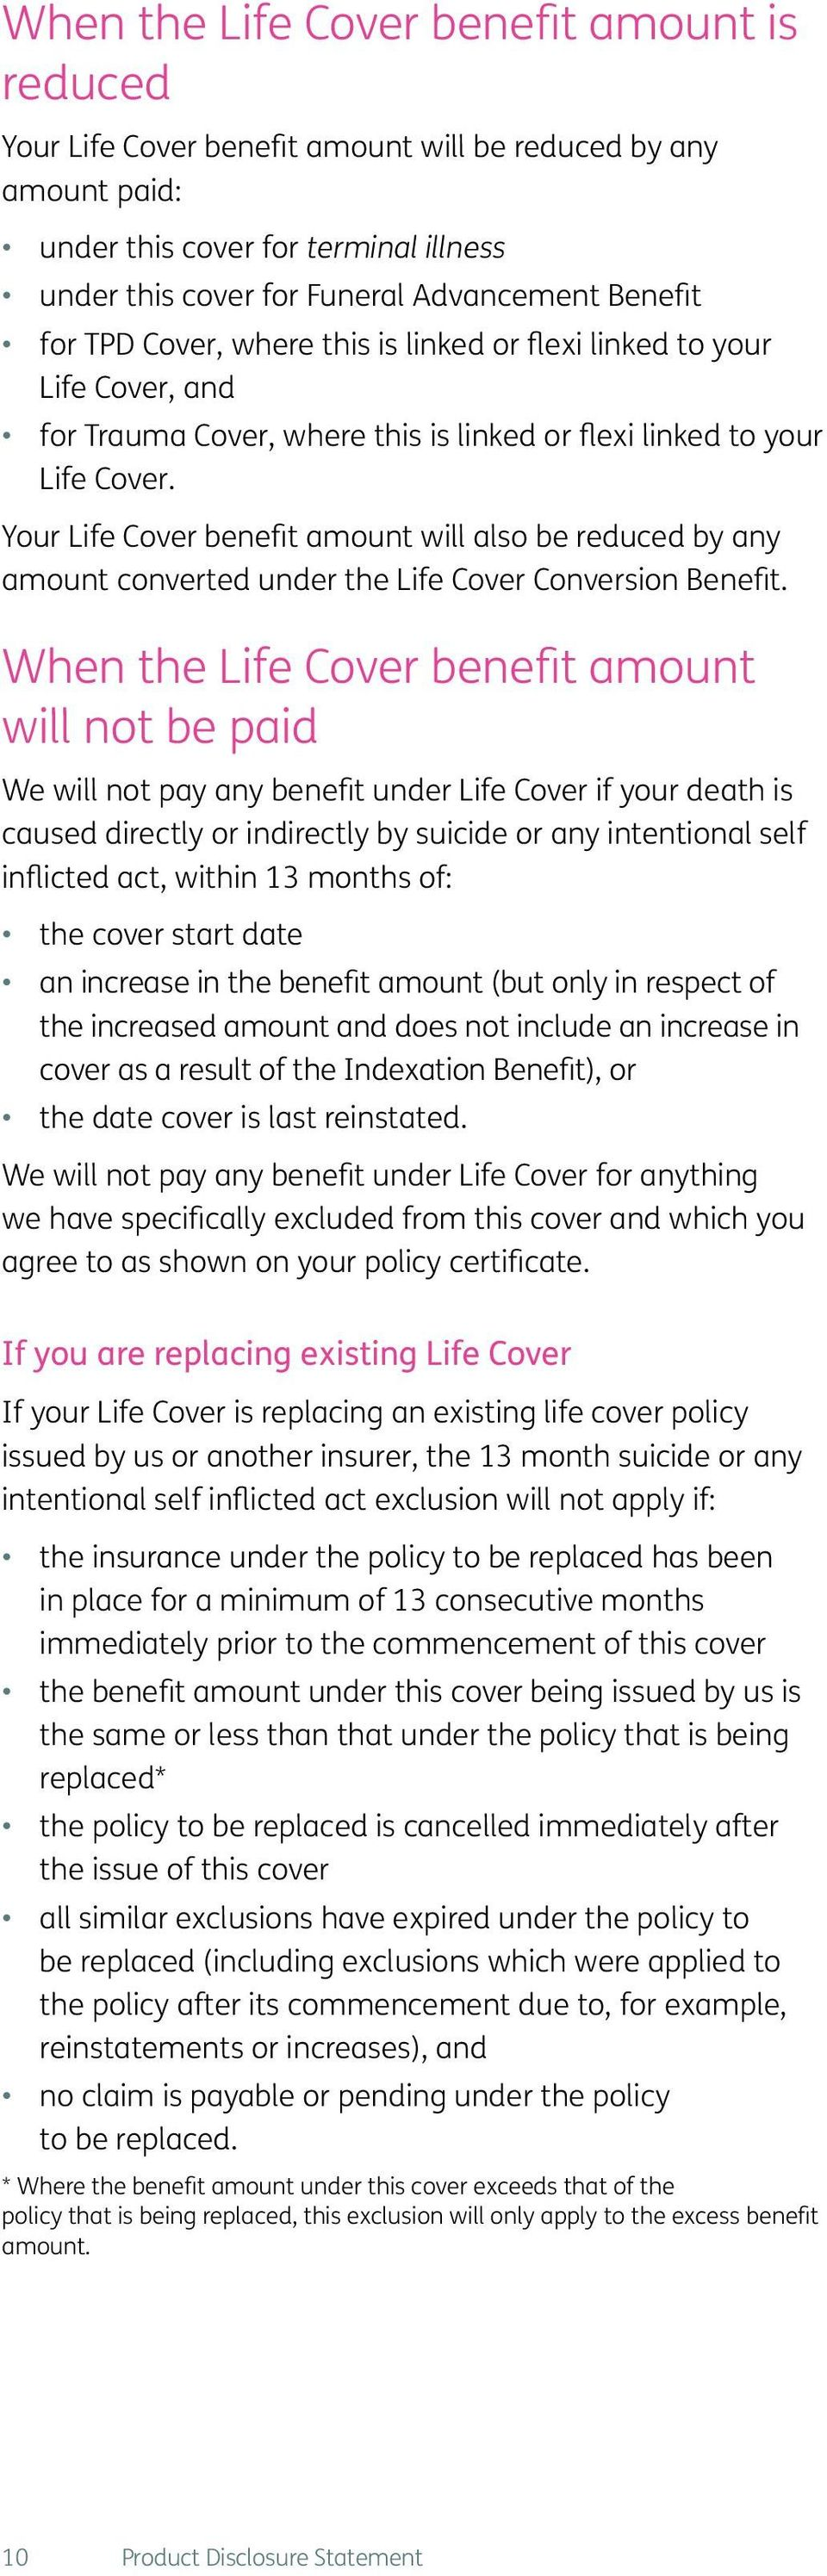 Your Life Cover benefit amount will also be reduced by any amount converted under the Life Cover Conversion Benefit.